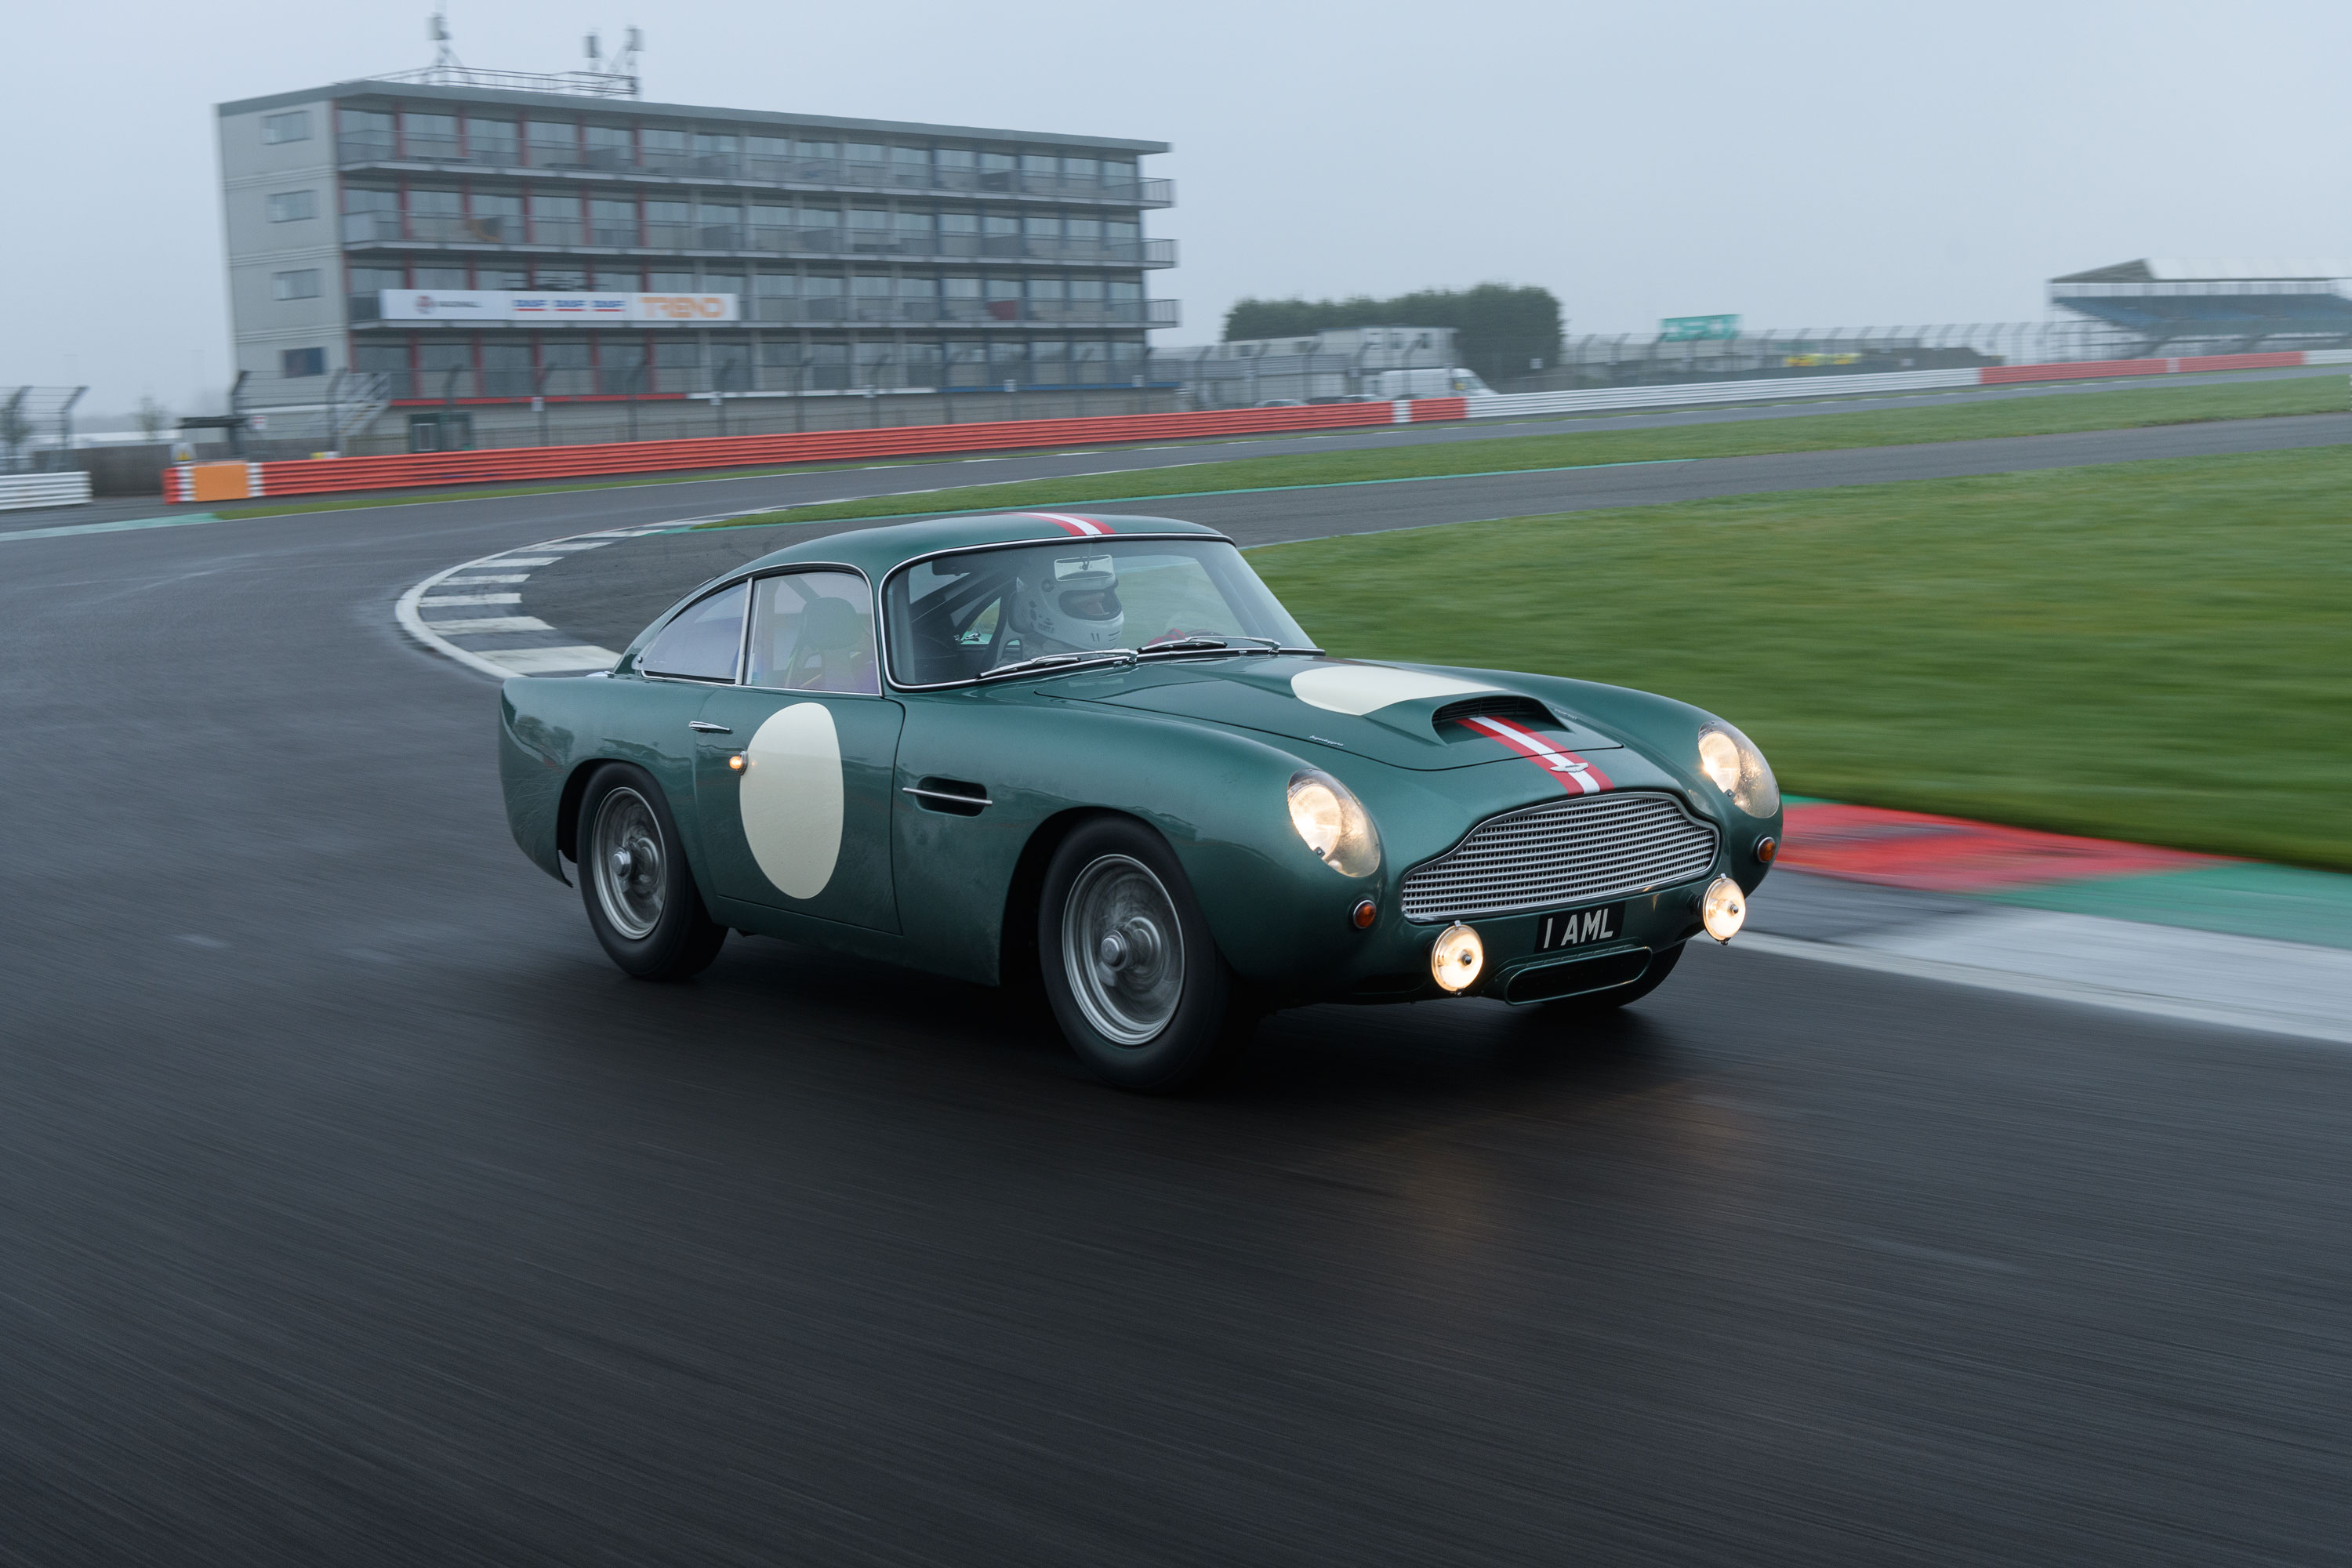 1959 Aston Martin DB4 GT driving